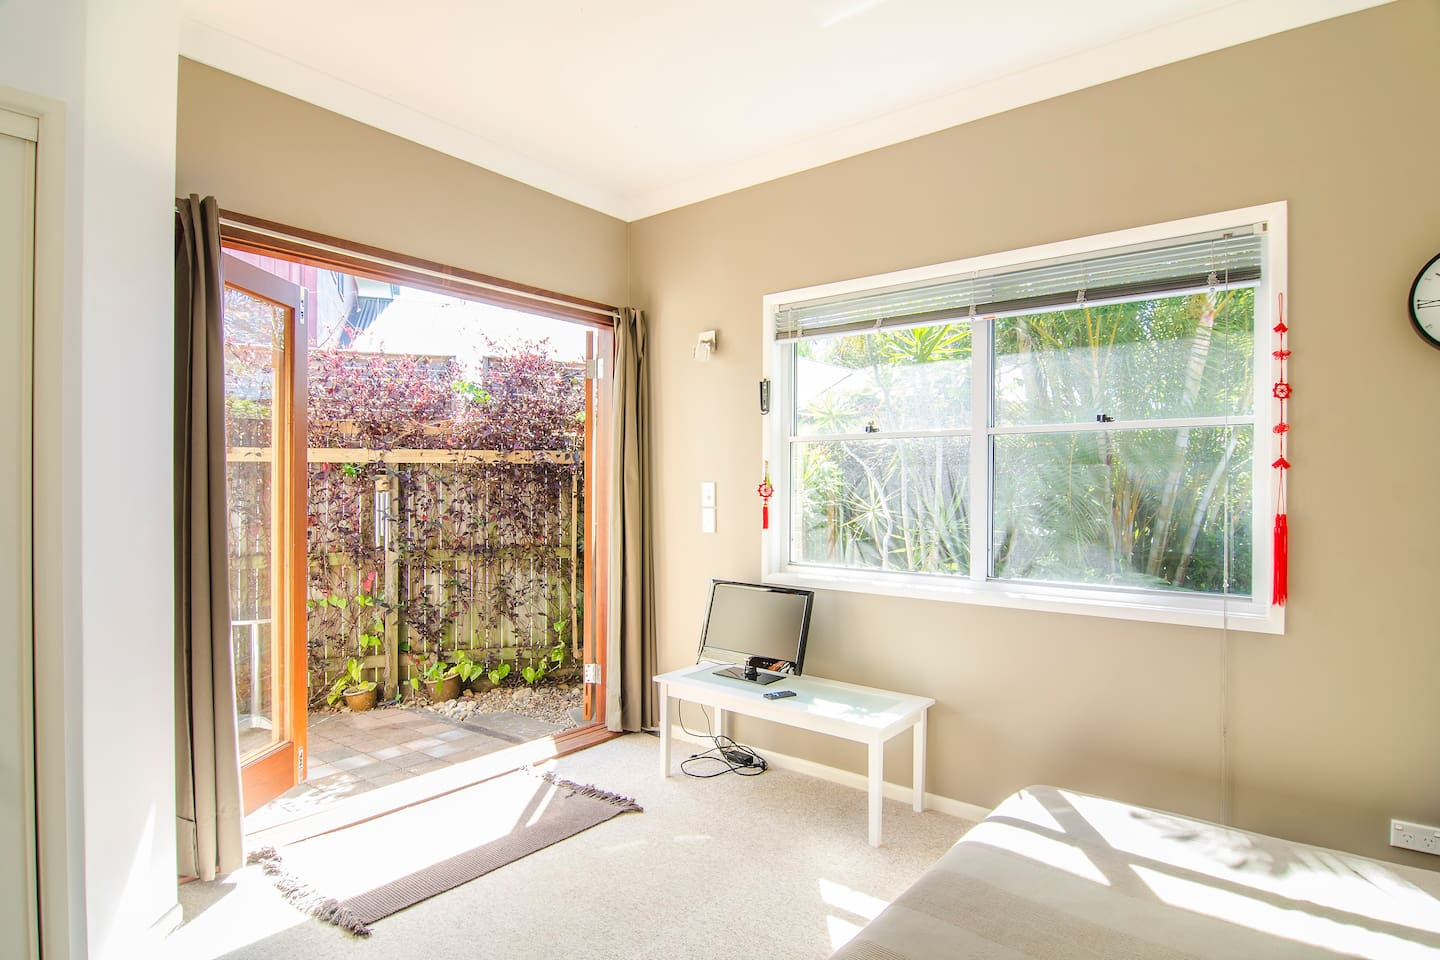 the flat studio is sunny and light and has three bifold doors leading into a private courtyard and windows to a subtropical garden. We change the colour scheme so some of the other pictures are the same studio. The queen bed has a low base.